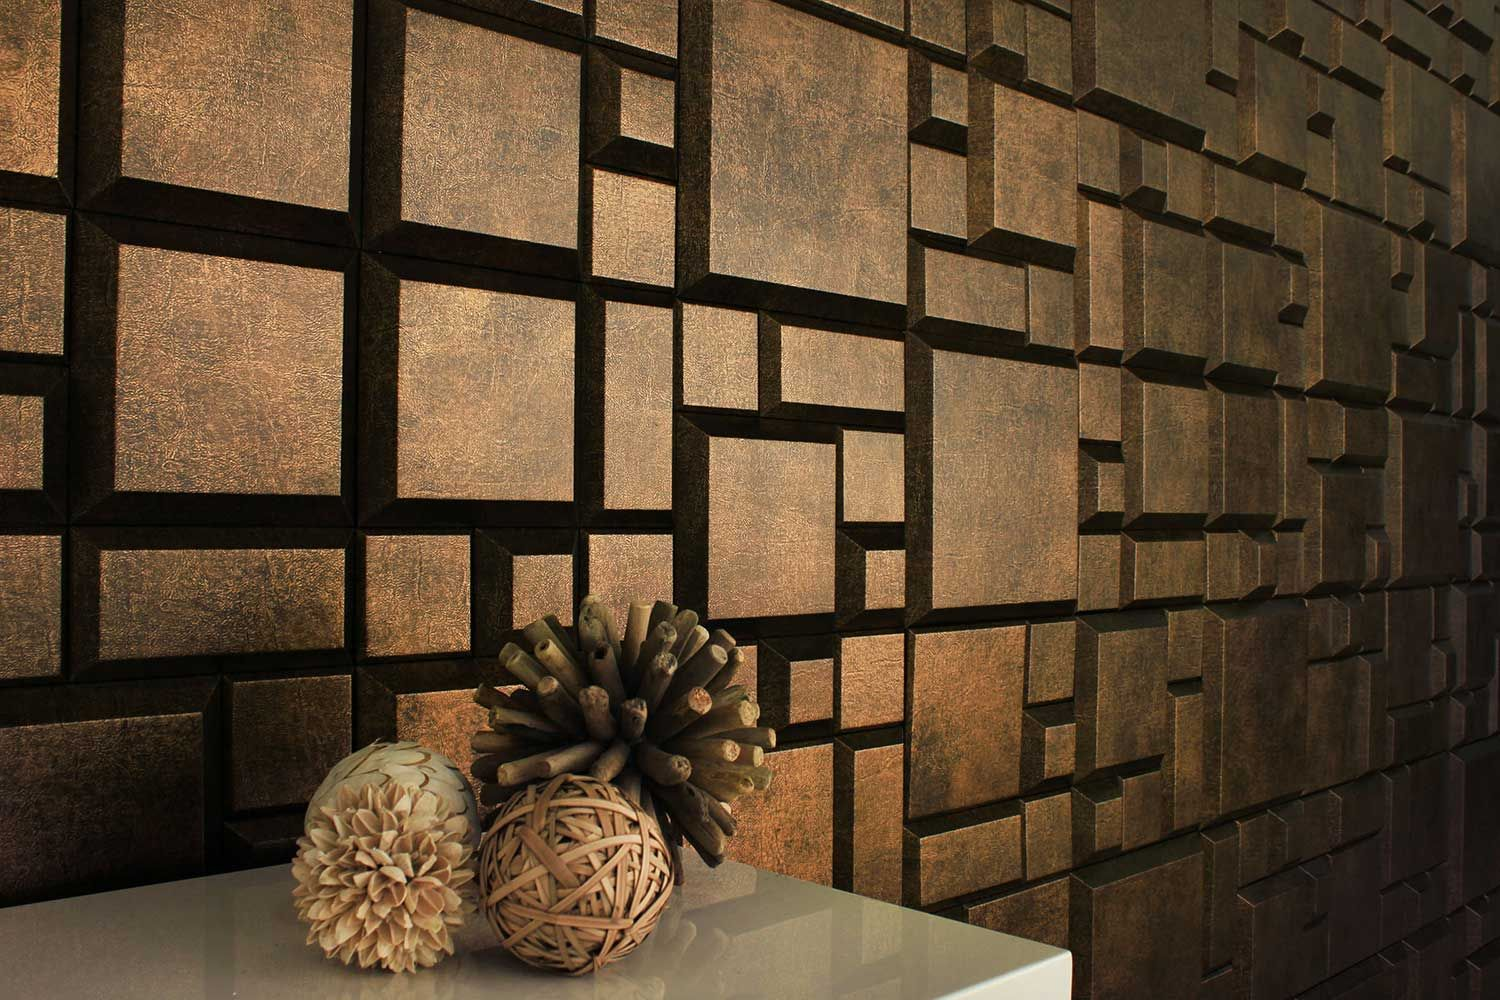 Chiseled Nacraft Collection Natile Faux Leather Wall Tiles